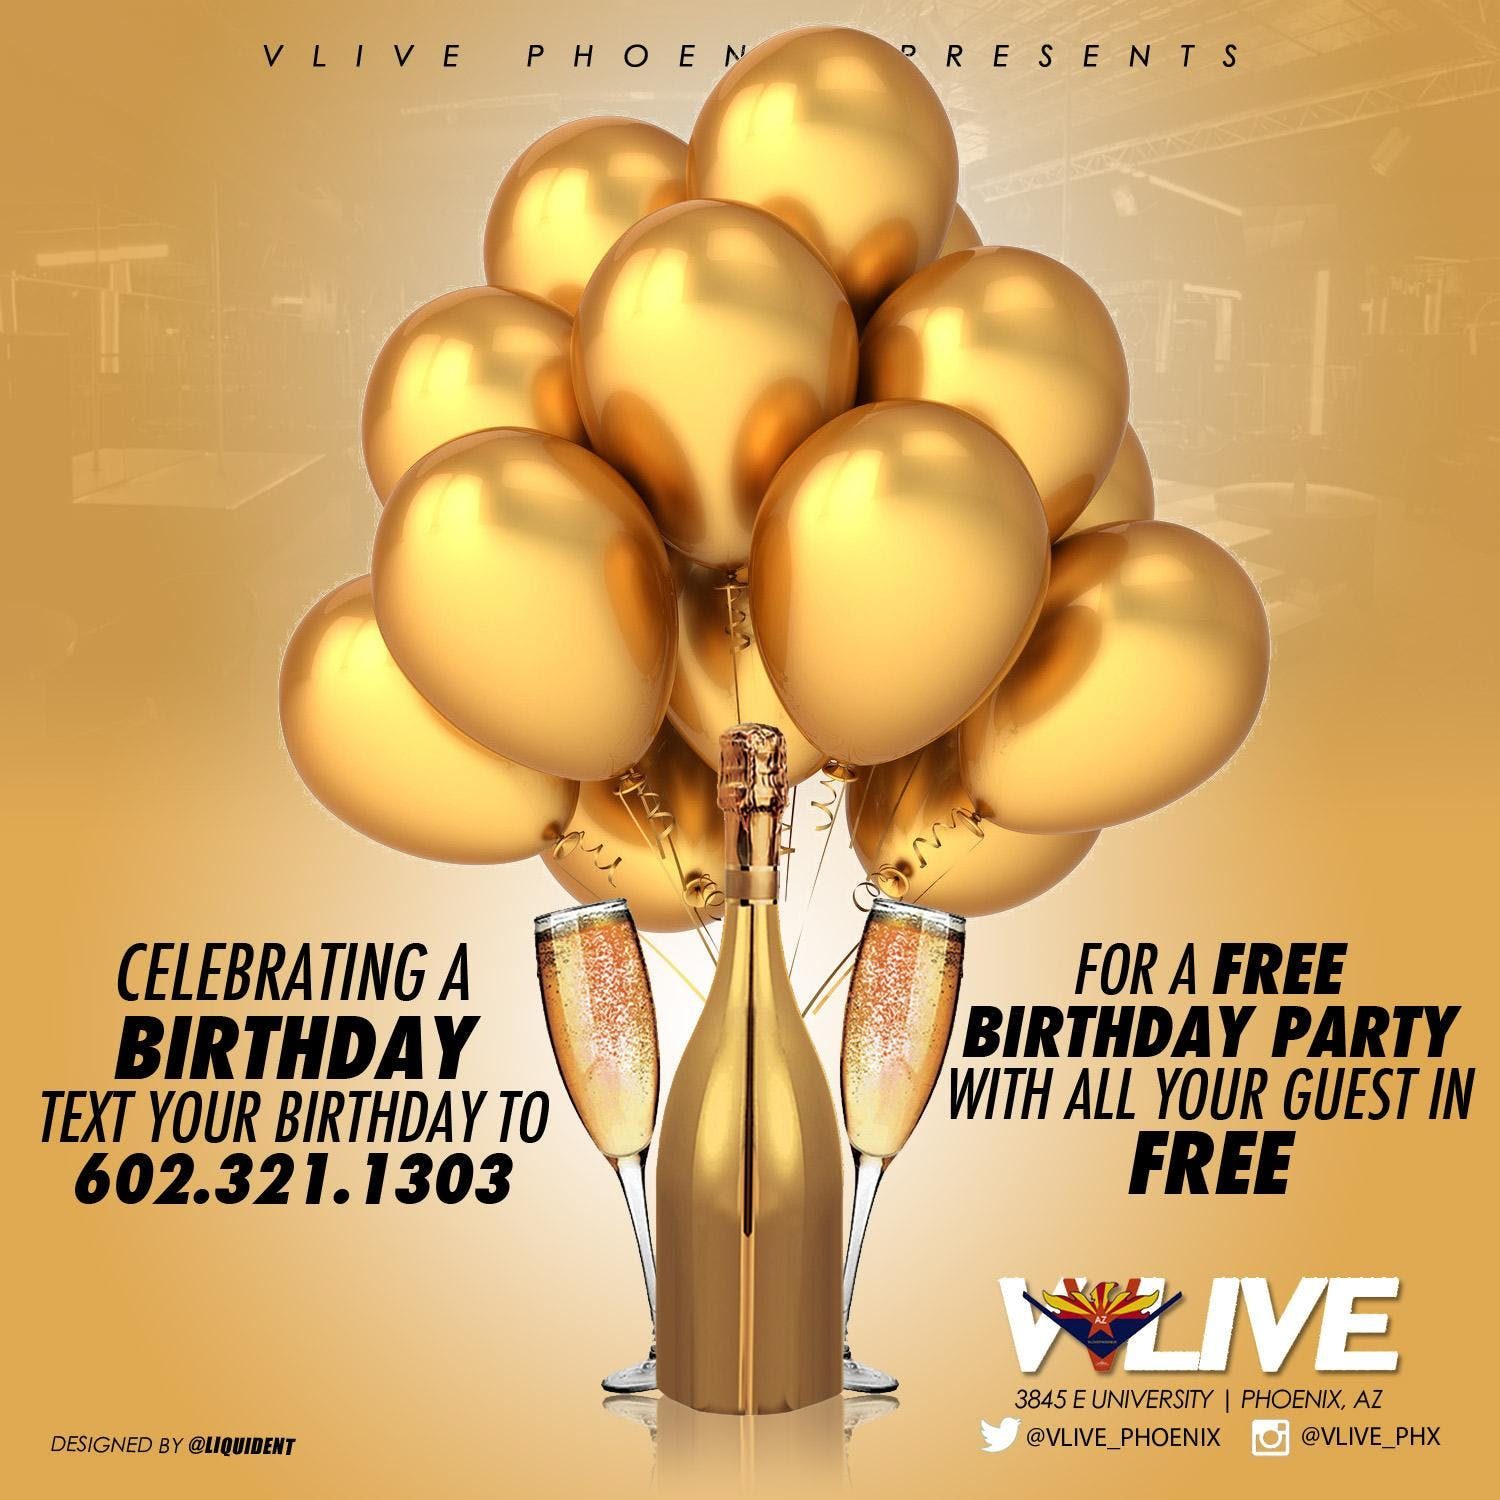 SATURDAY April 20th MY BIRTHDAY PARTY FREE VIP ADMISSION TICKETS GOOD UNTIL 11PM